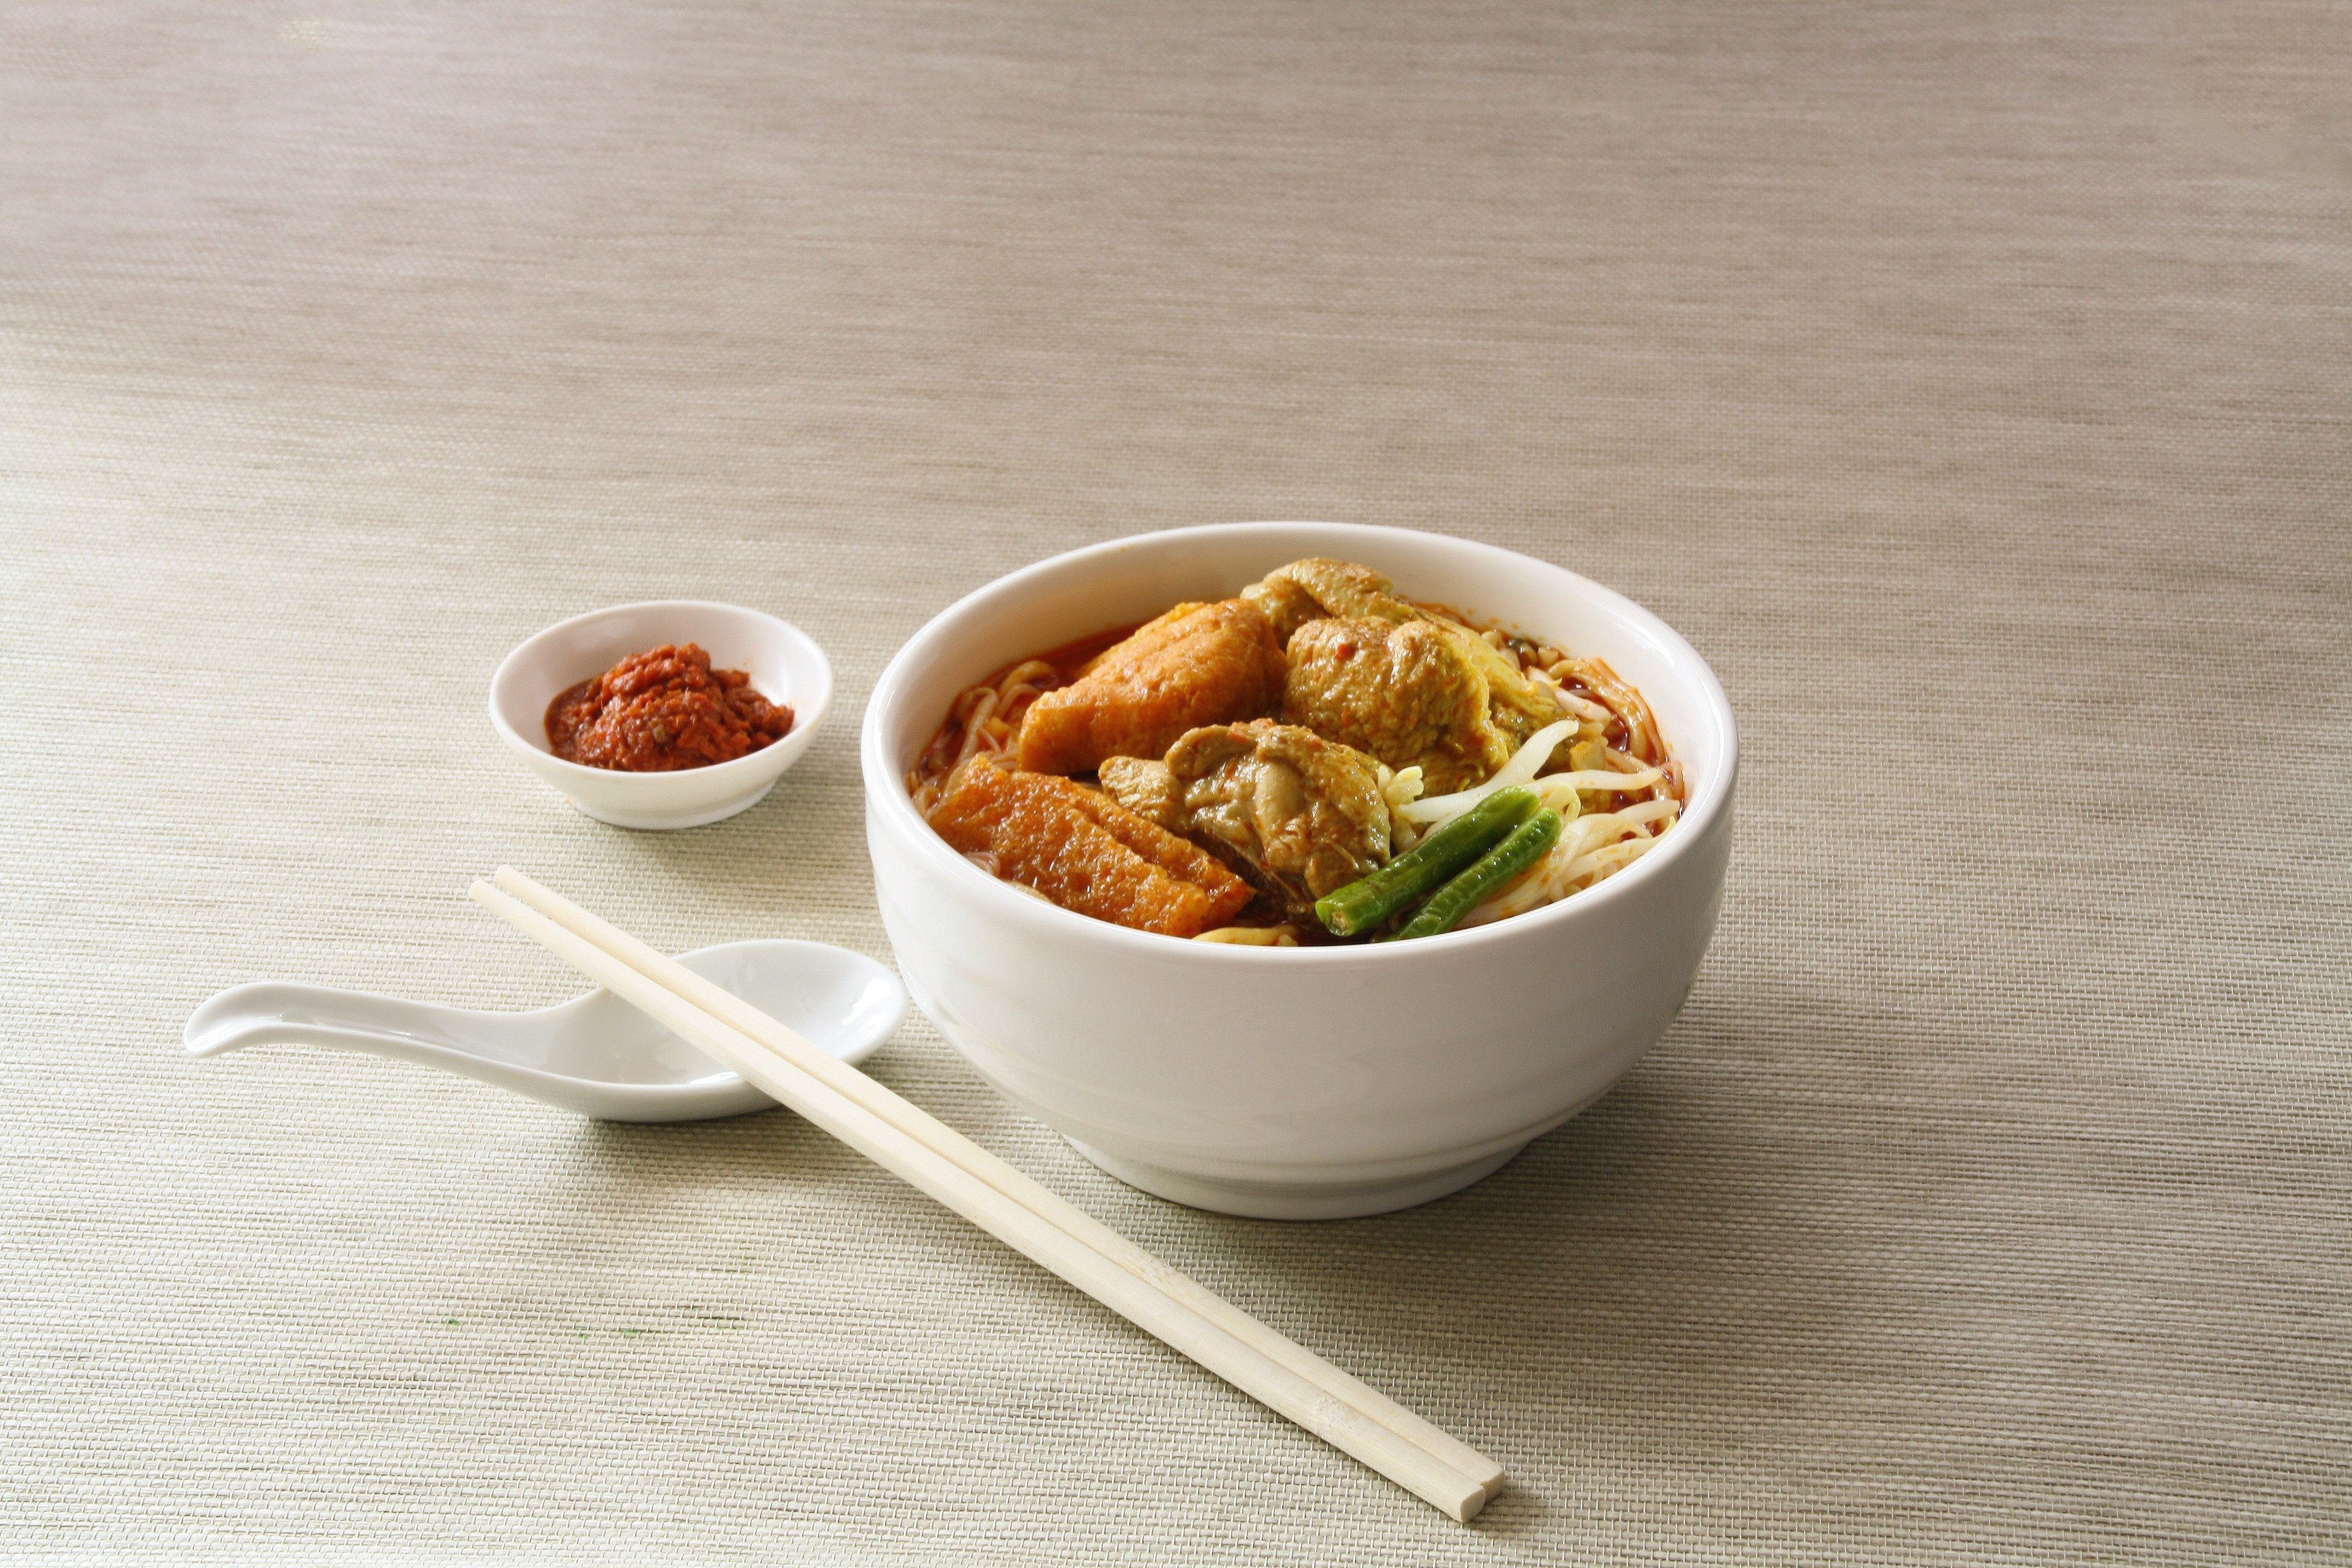 Image of Asian food